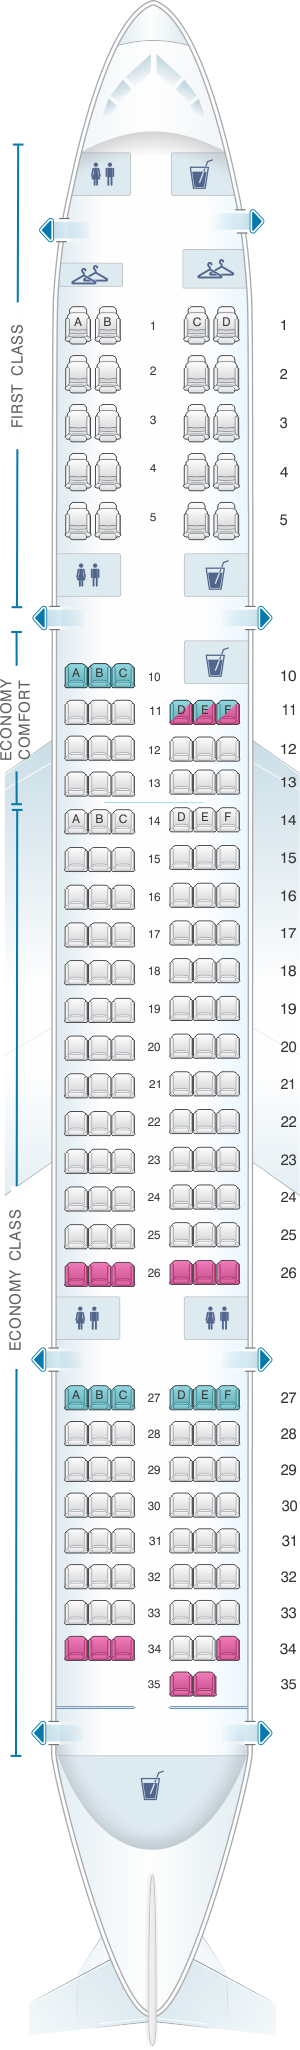 Seat map for Delta Air Lines Boeing B757 200 (75G)